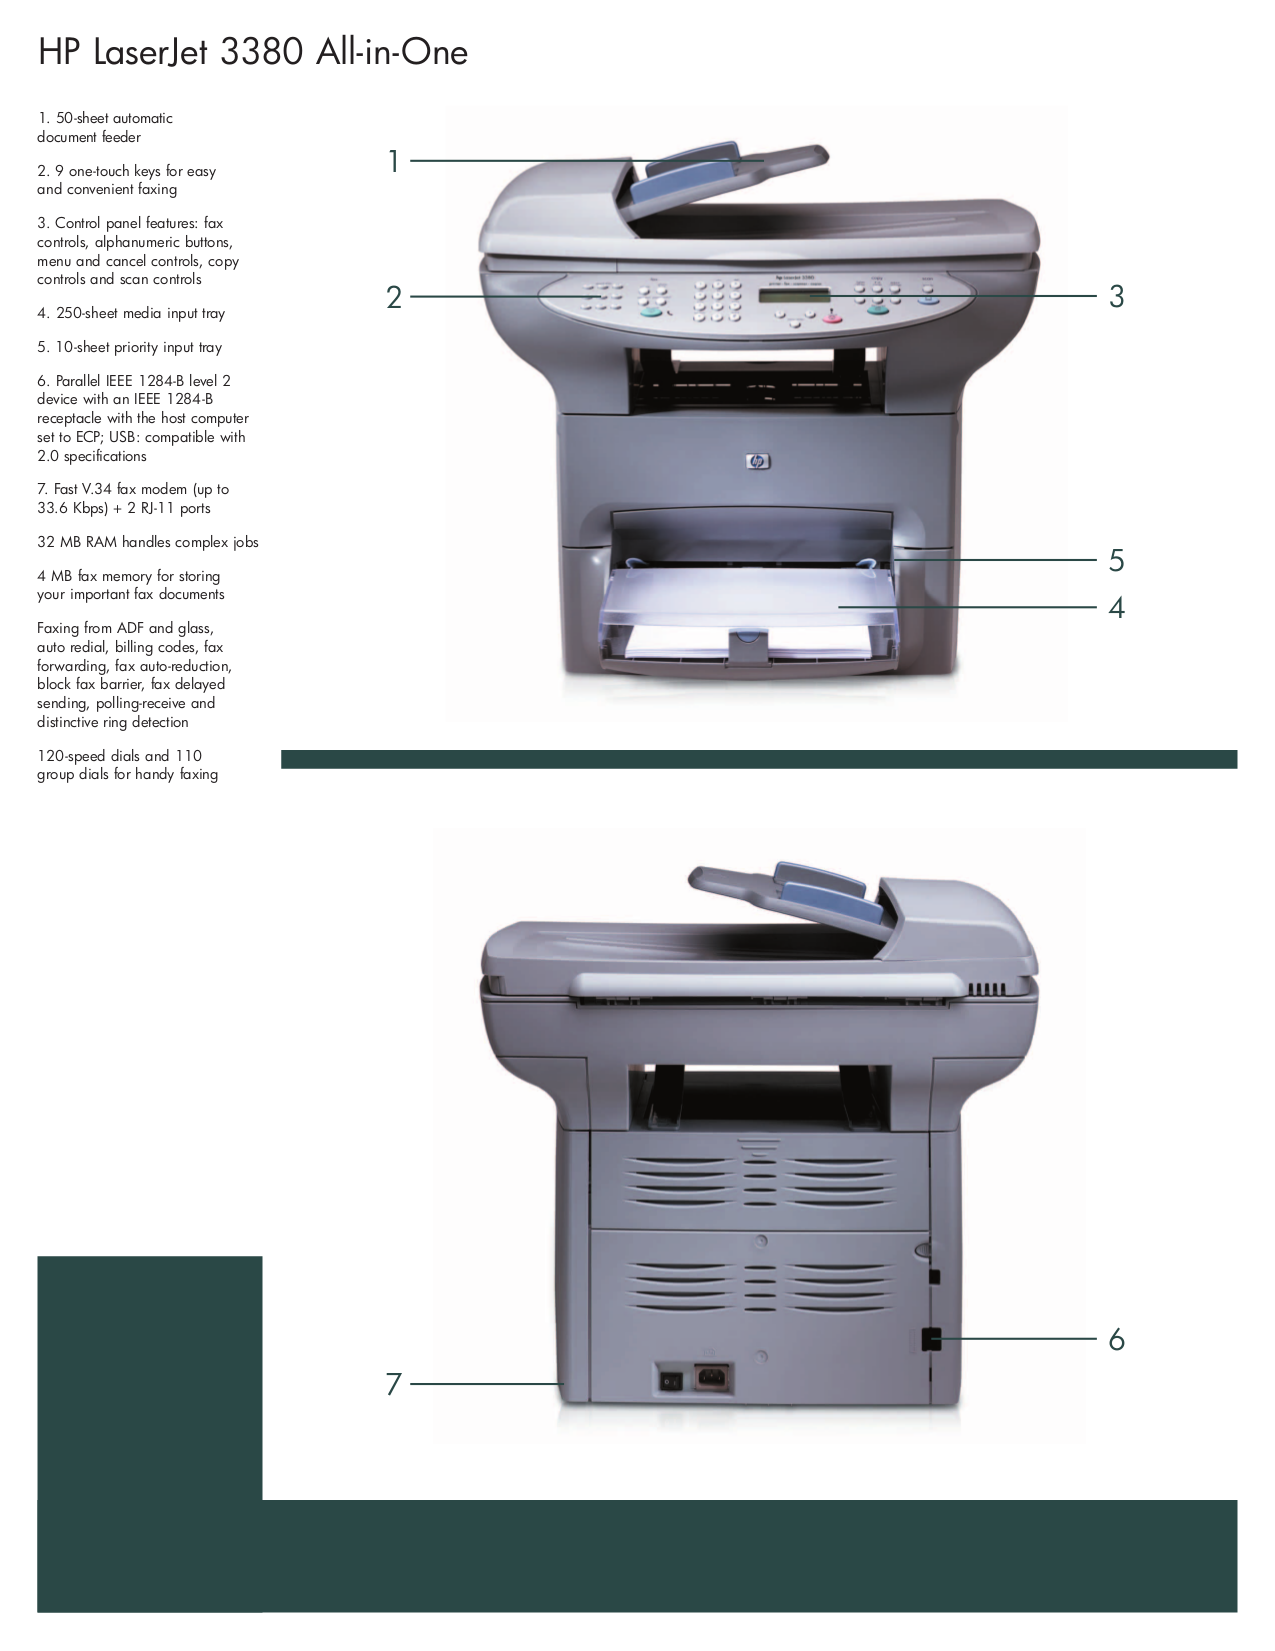 pdf manual for hp multifunction printer laserjet color laserjet 3380 rh umlib com HP LaserJet 1200 HP LaserJet 3300